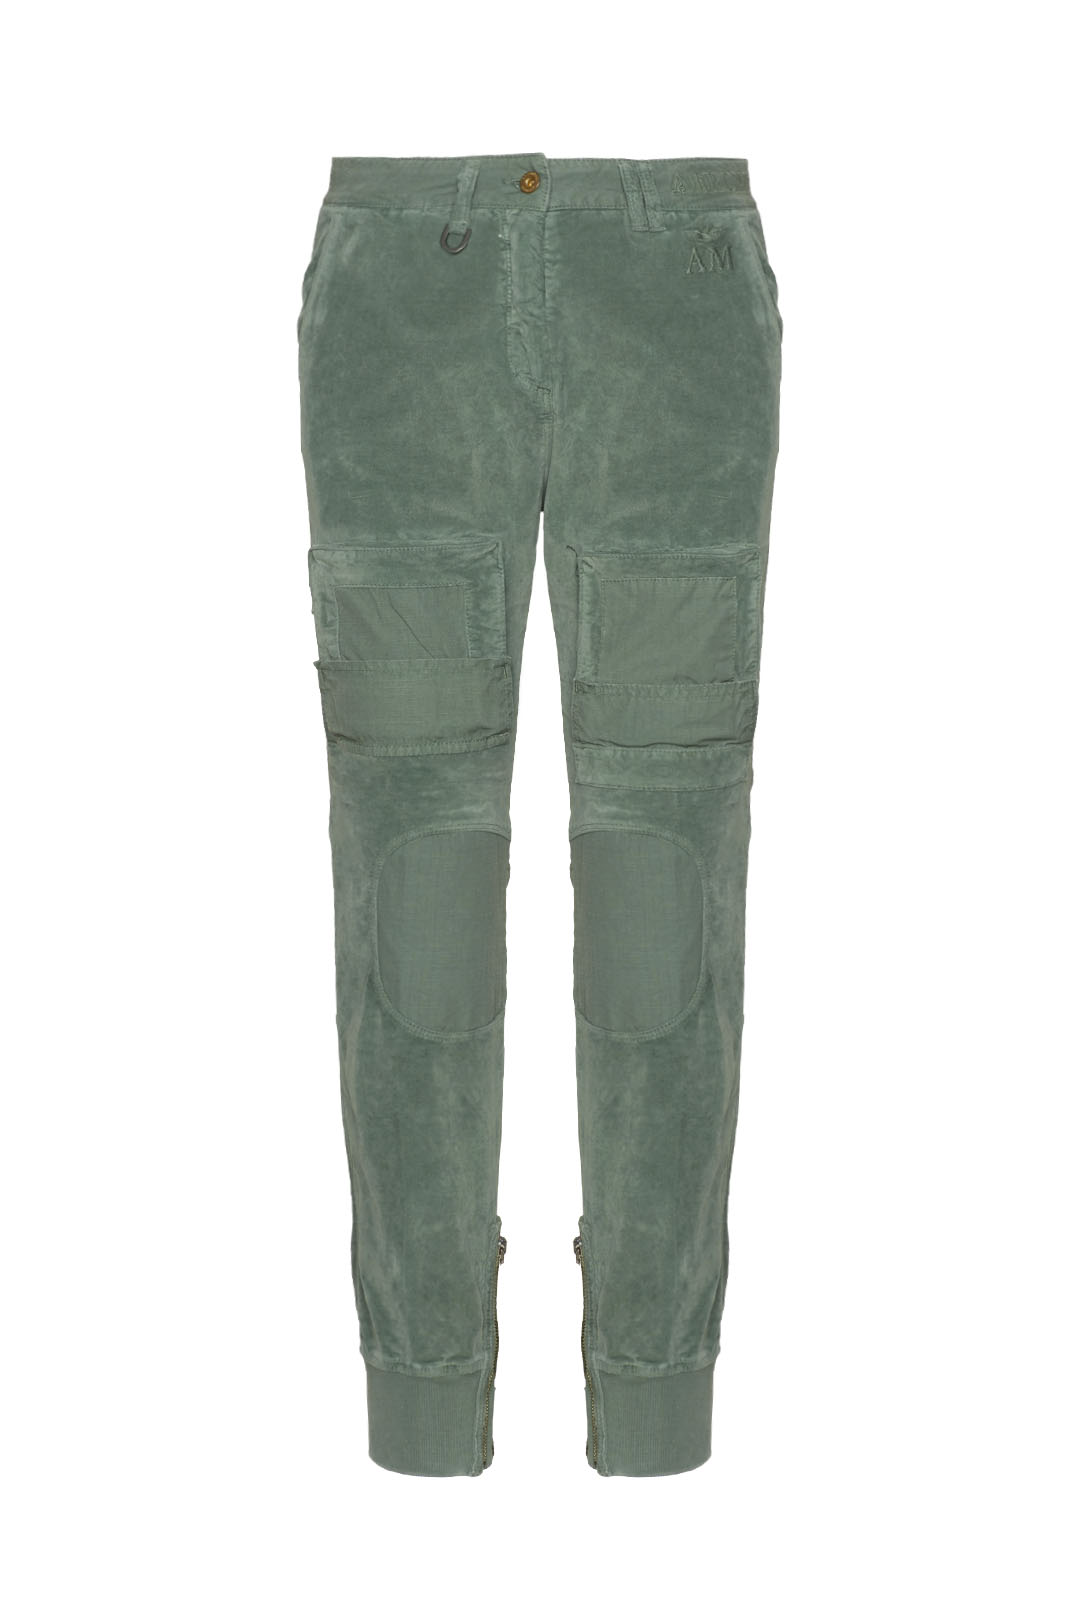 Iconic velvet and ripstop Anti-G pants   1